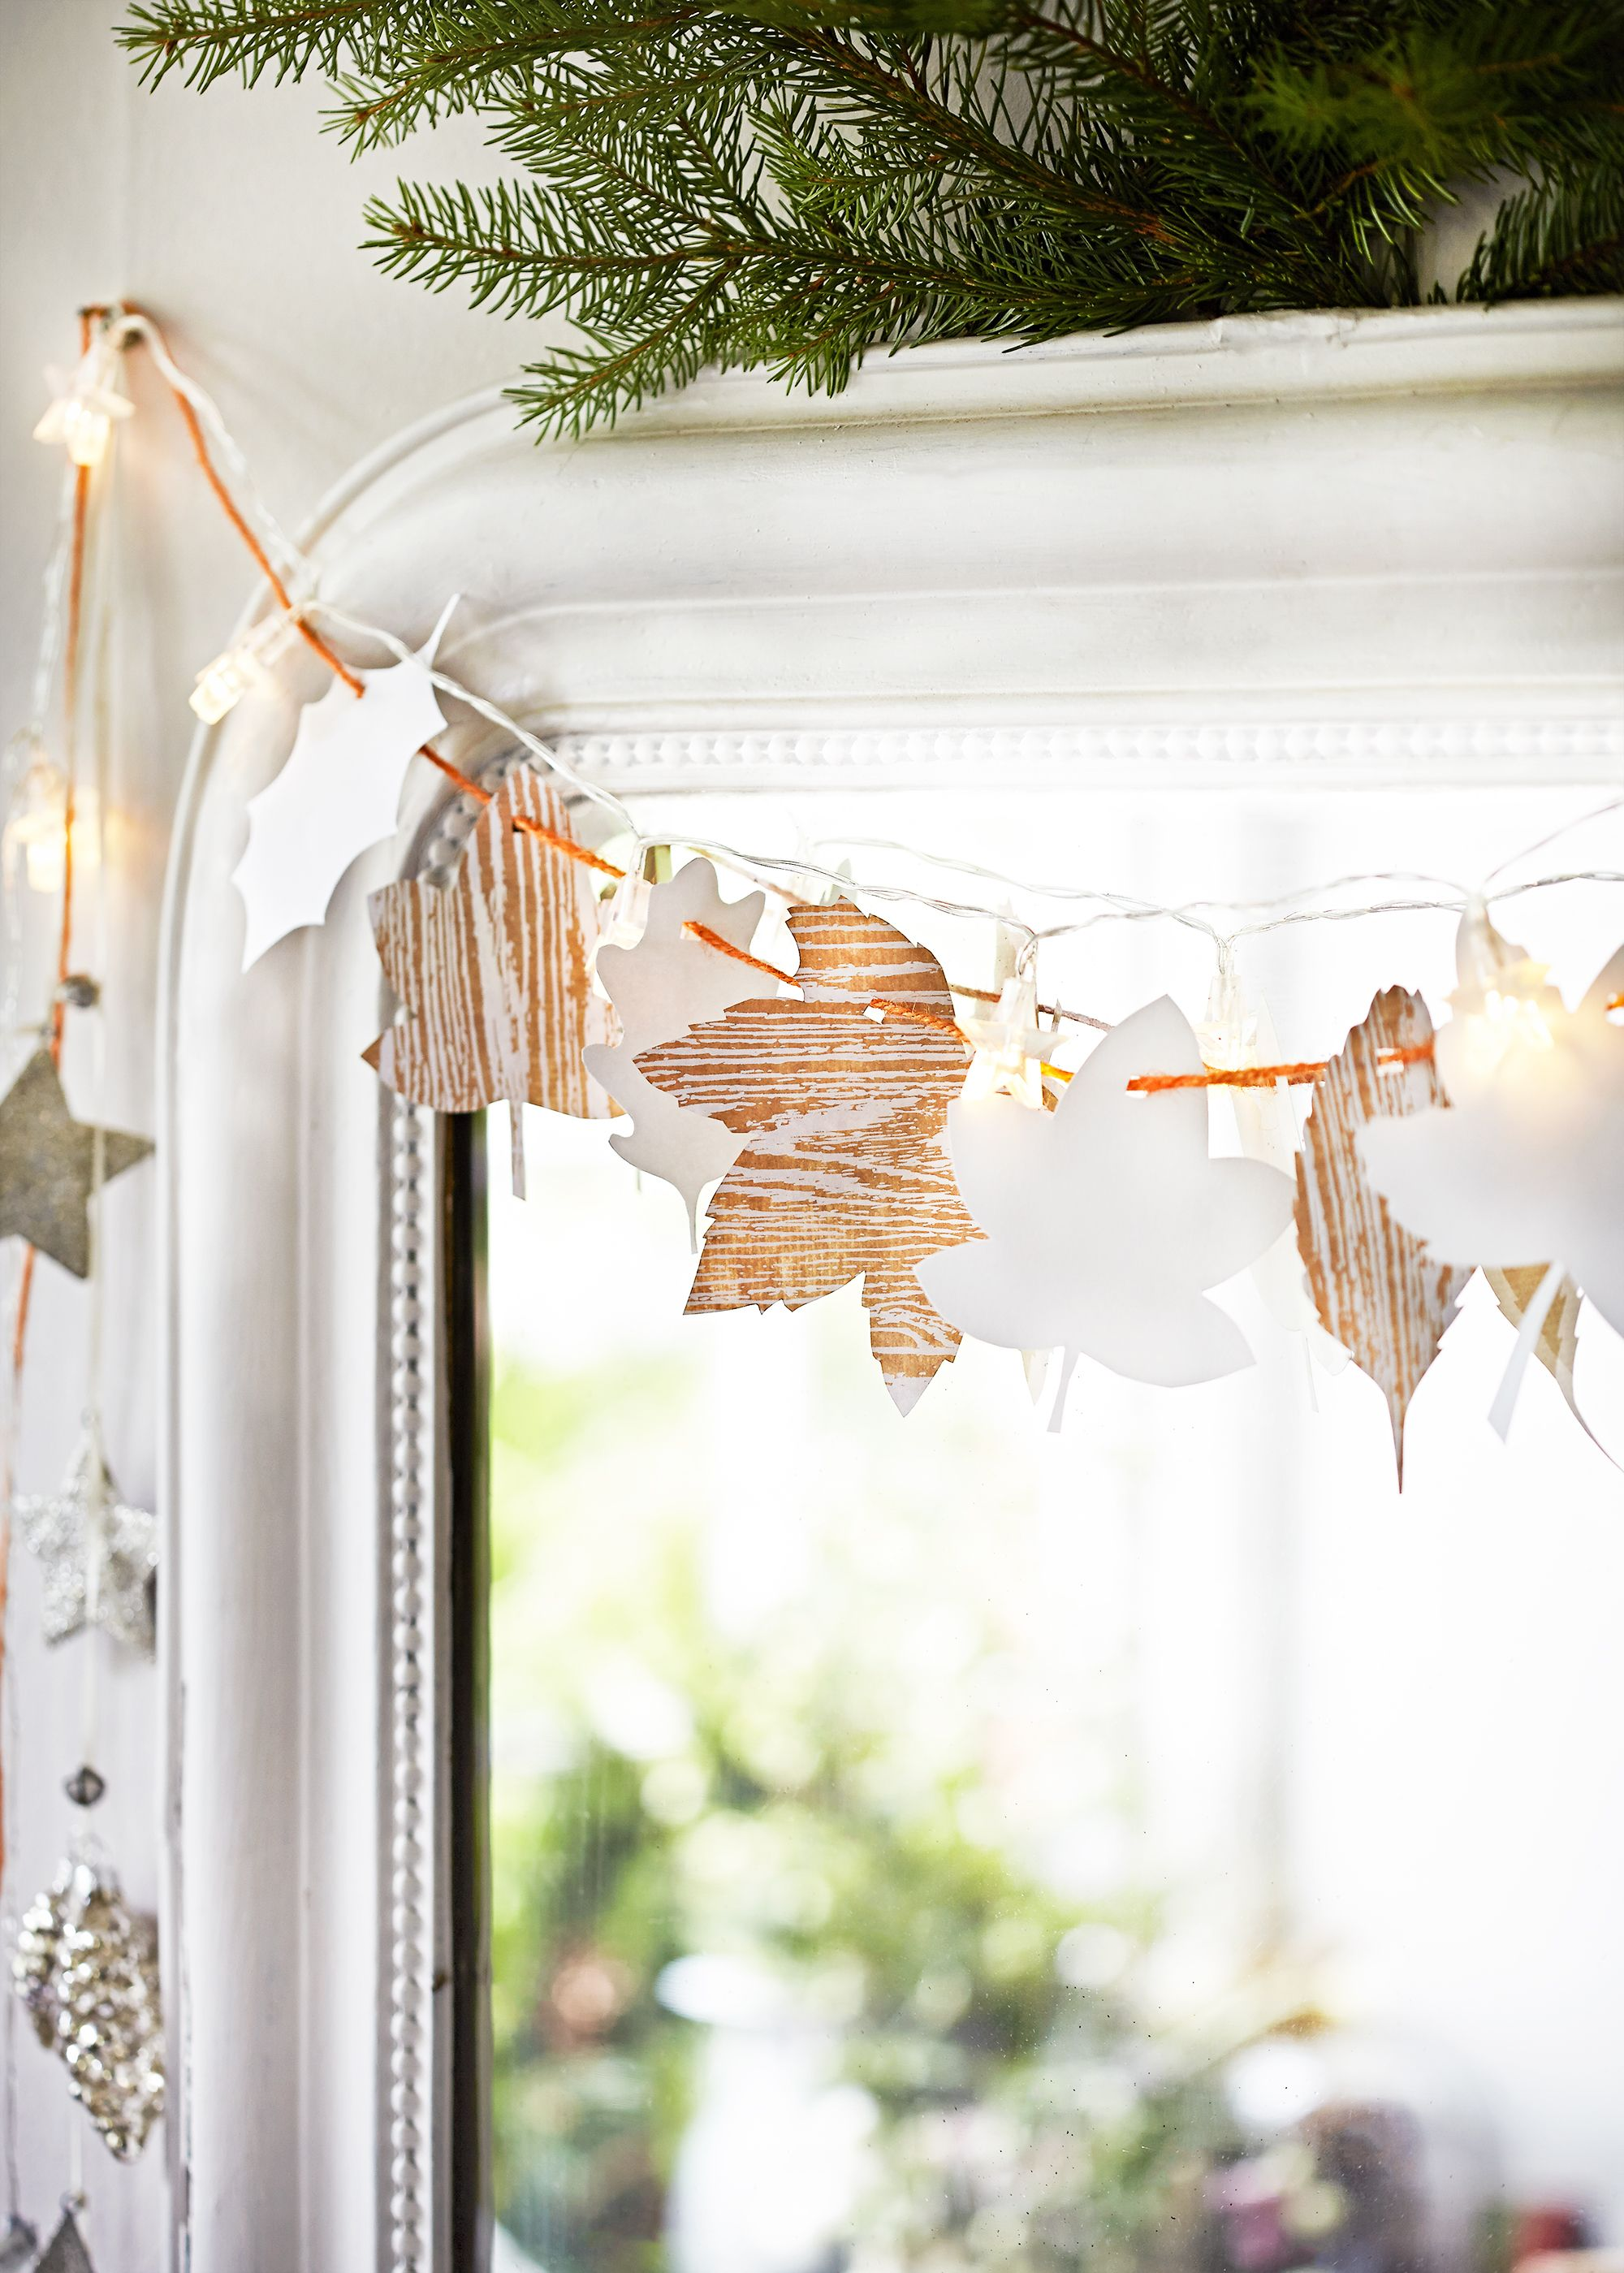 12 Easy DIY Christmas Window Decorations   Best Holiday Window Ideas